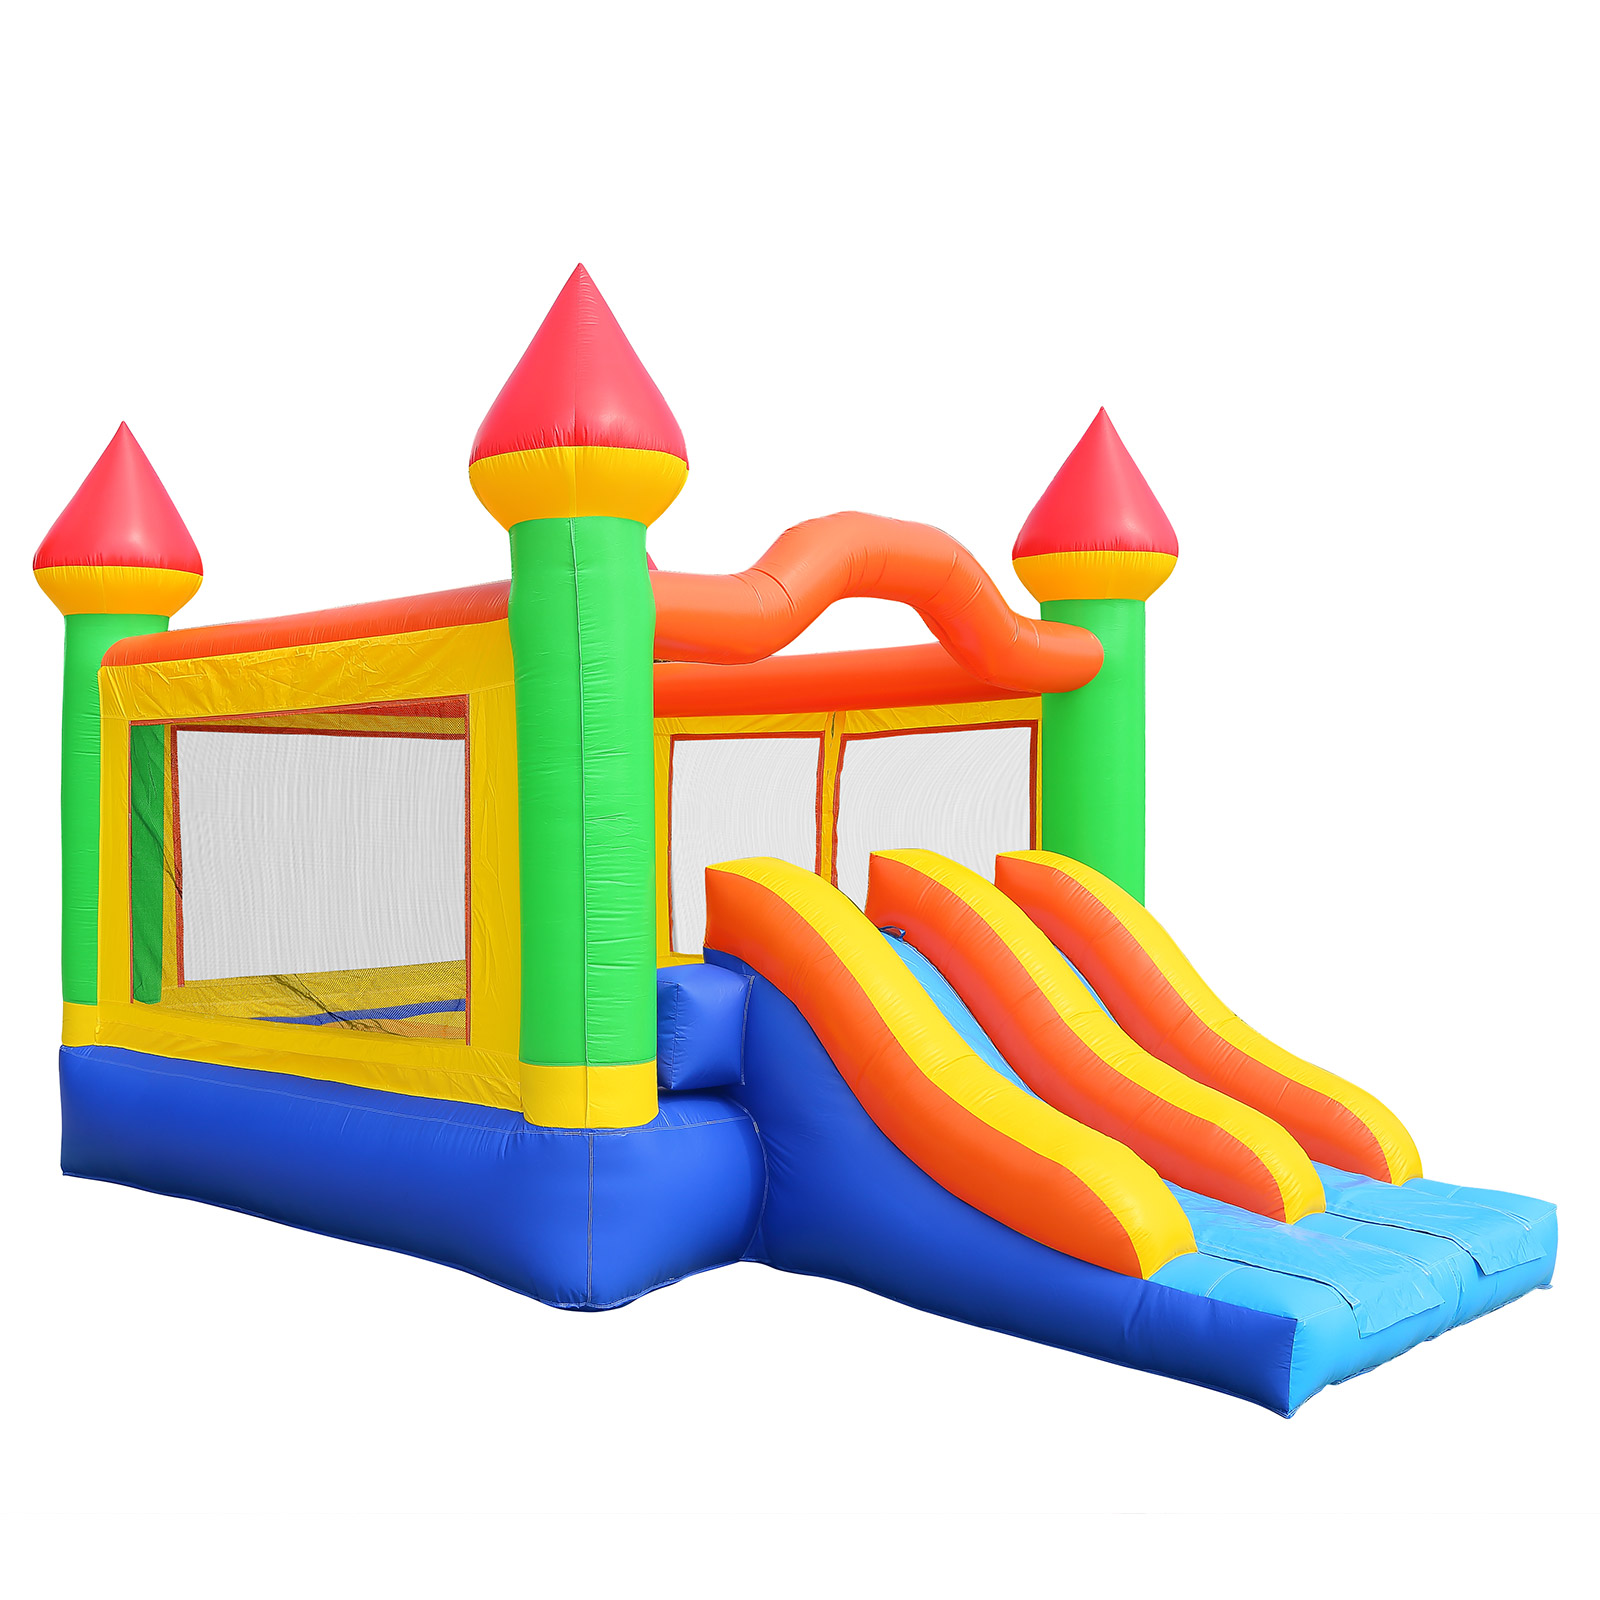 Inflatable HQ Commercial Bounce House Mega Double Slide Climbing Wall 100% PVC Inflatable Only